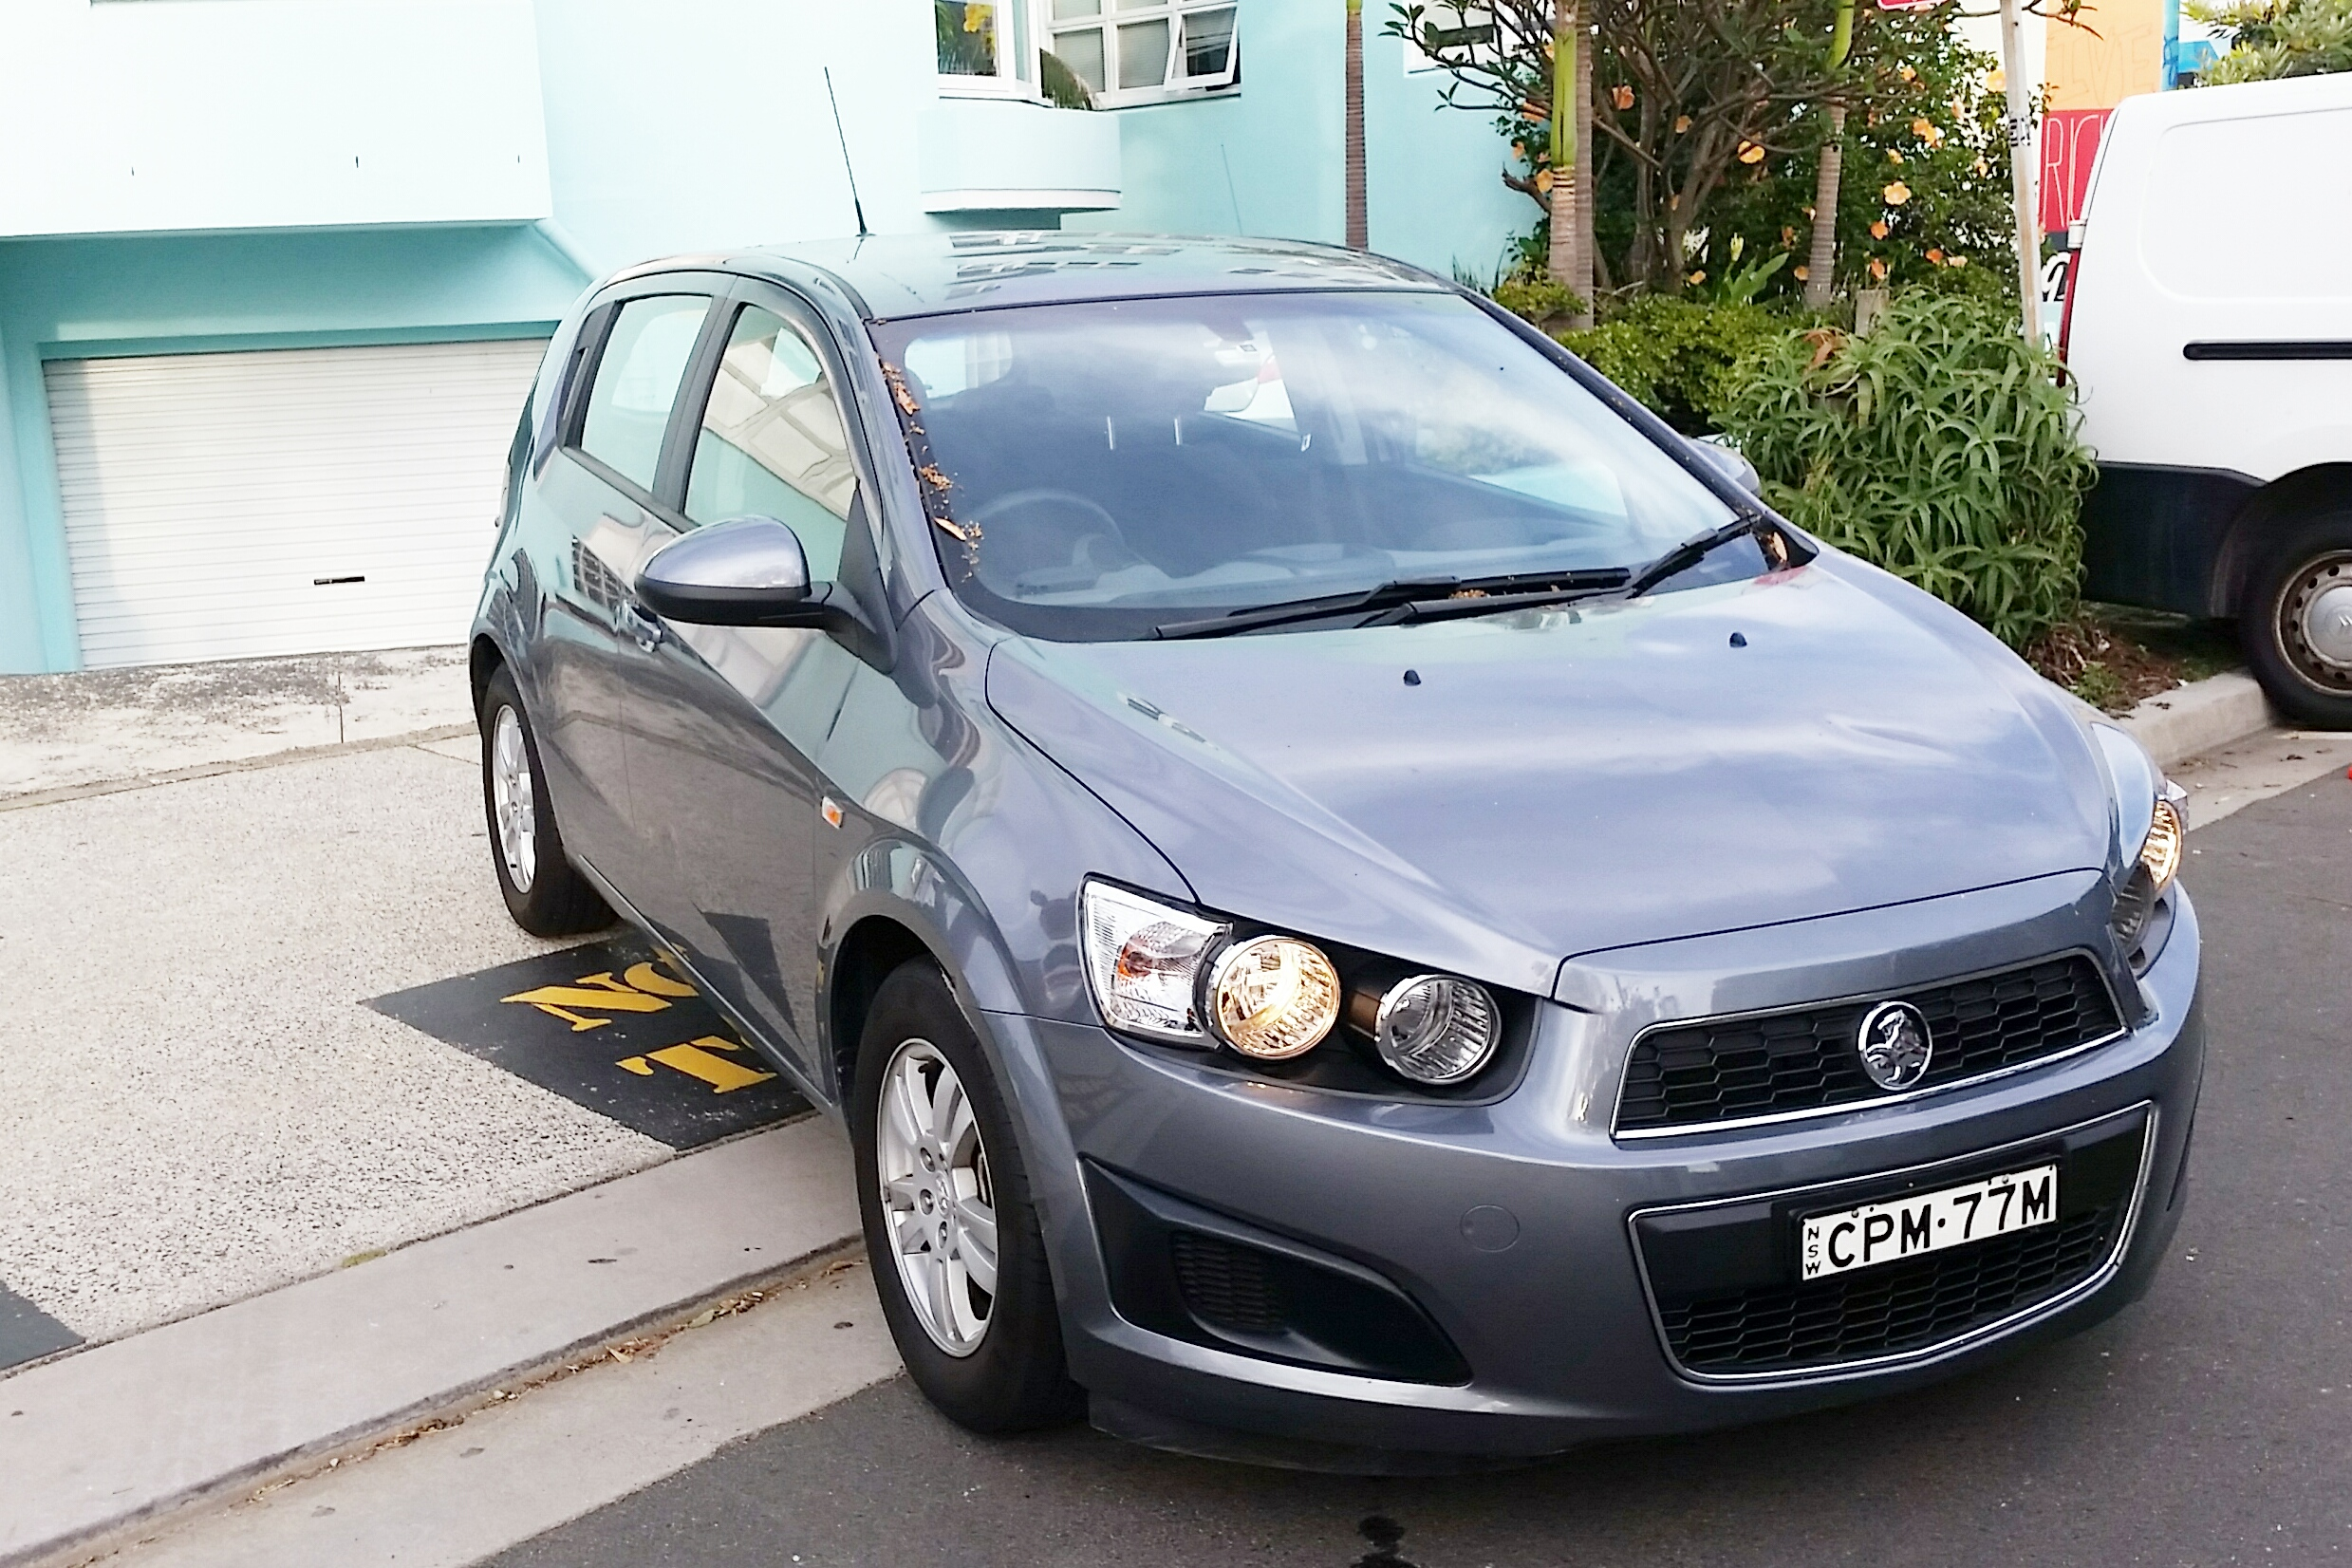 Rent Leah S 2013 Holden Barina Cd By The Hour Or Day In